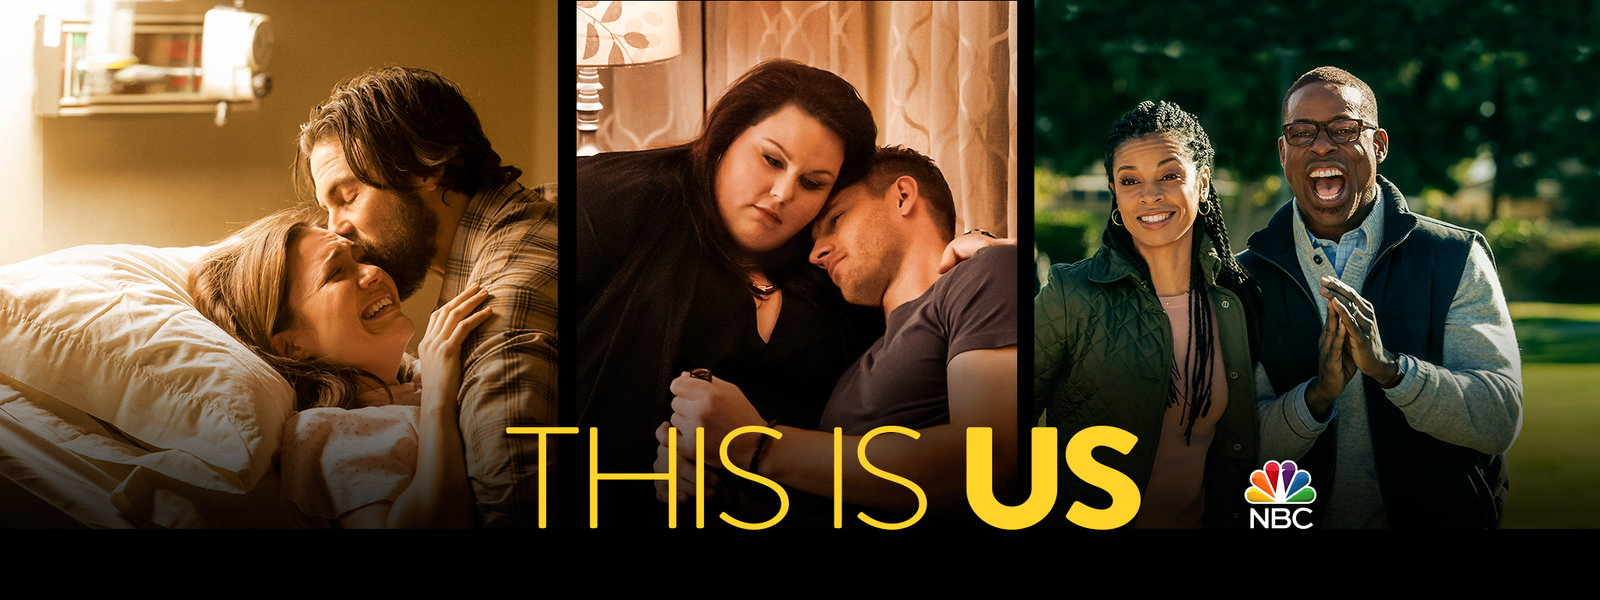 This Is Us, NBC